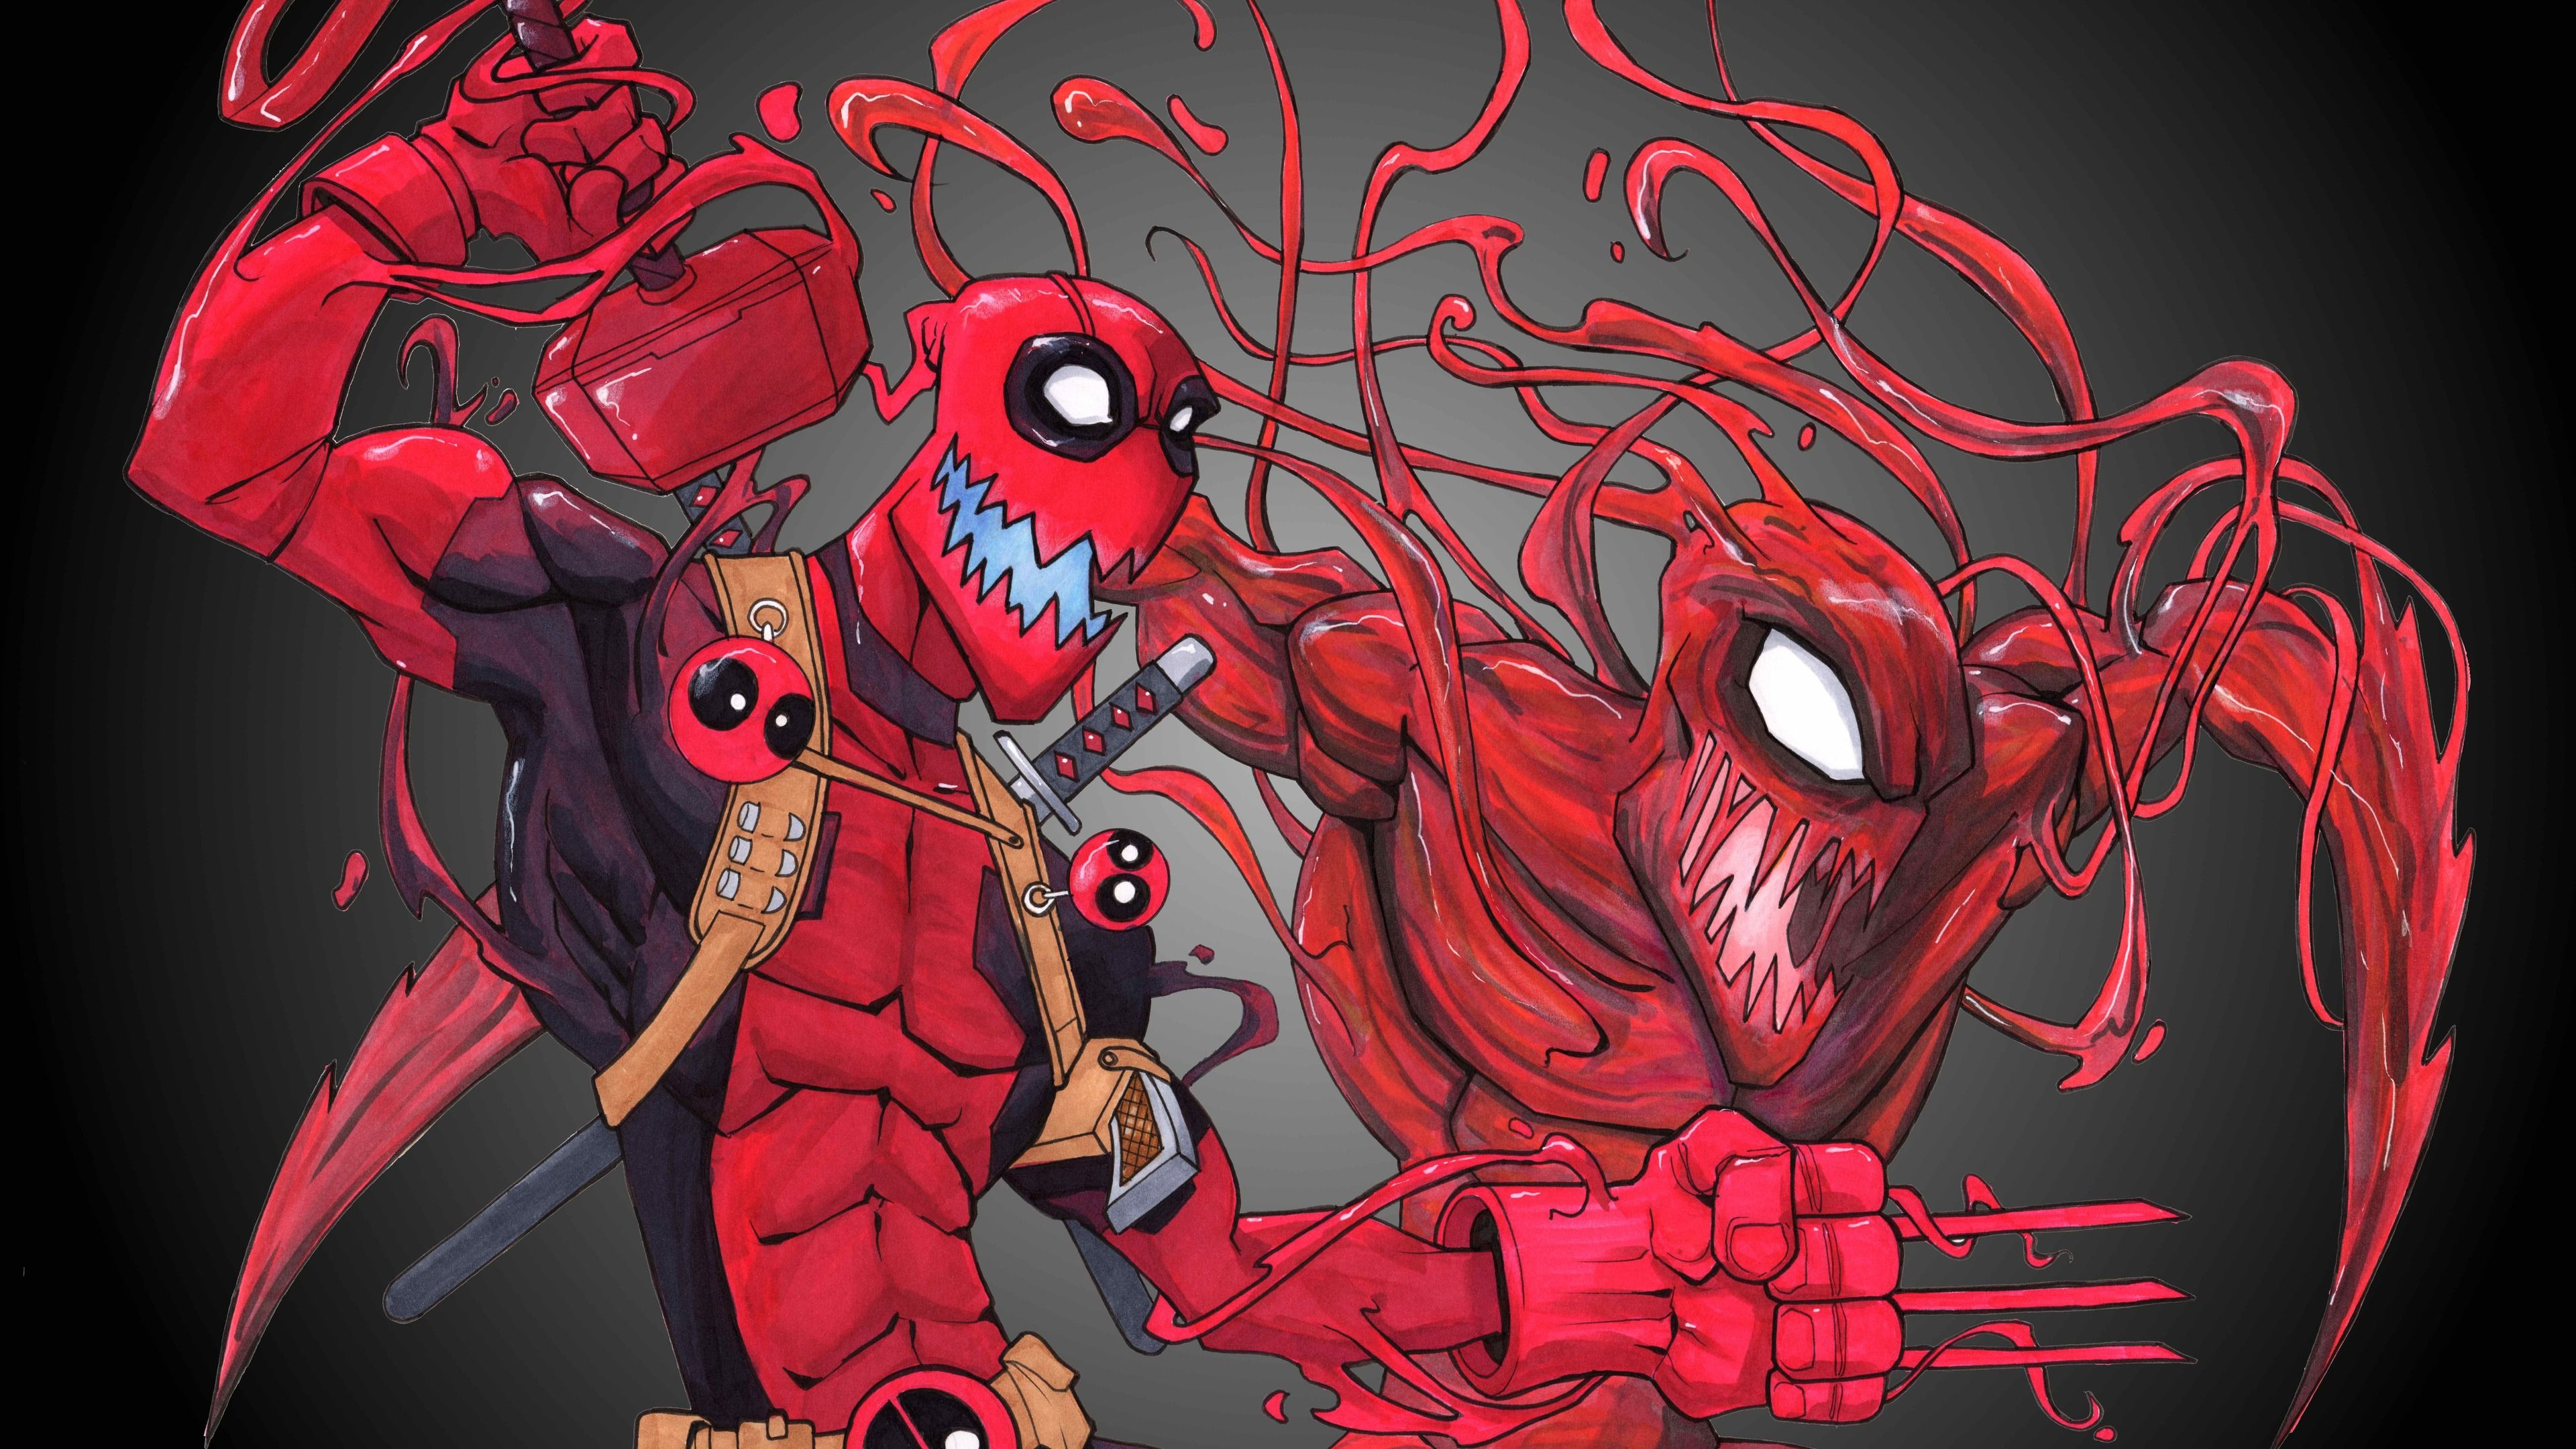 Deadpool Carnage 4k Superheroes Wallpapers Hd Wallpapers Digital Art Wallpapers Deadpool Wallpapers Carnage Deadpool Wallpaper Deadpool Poster 8k Wallpaper